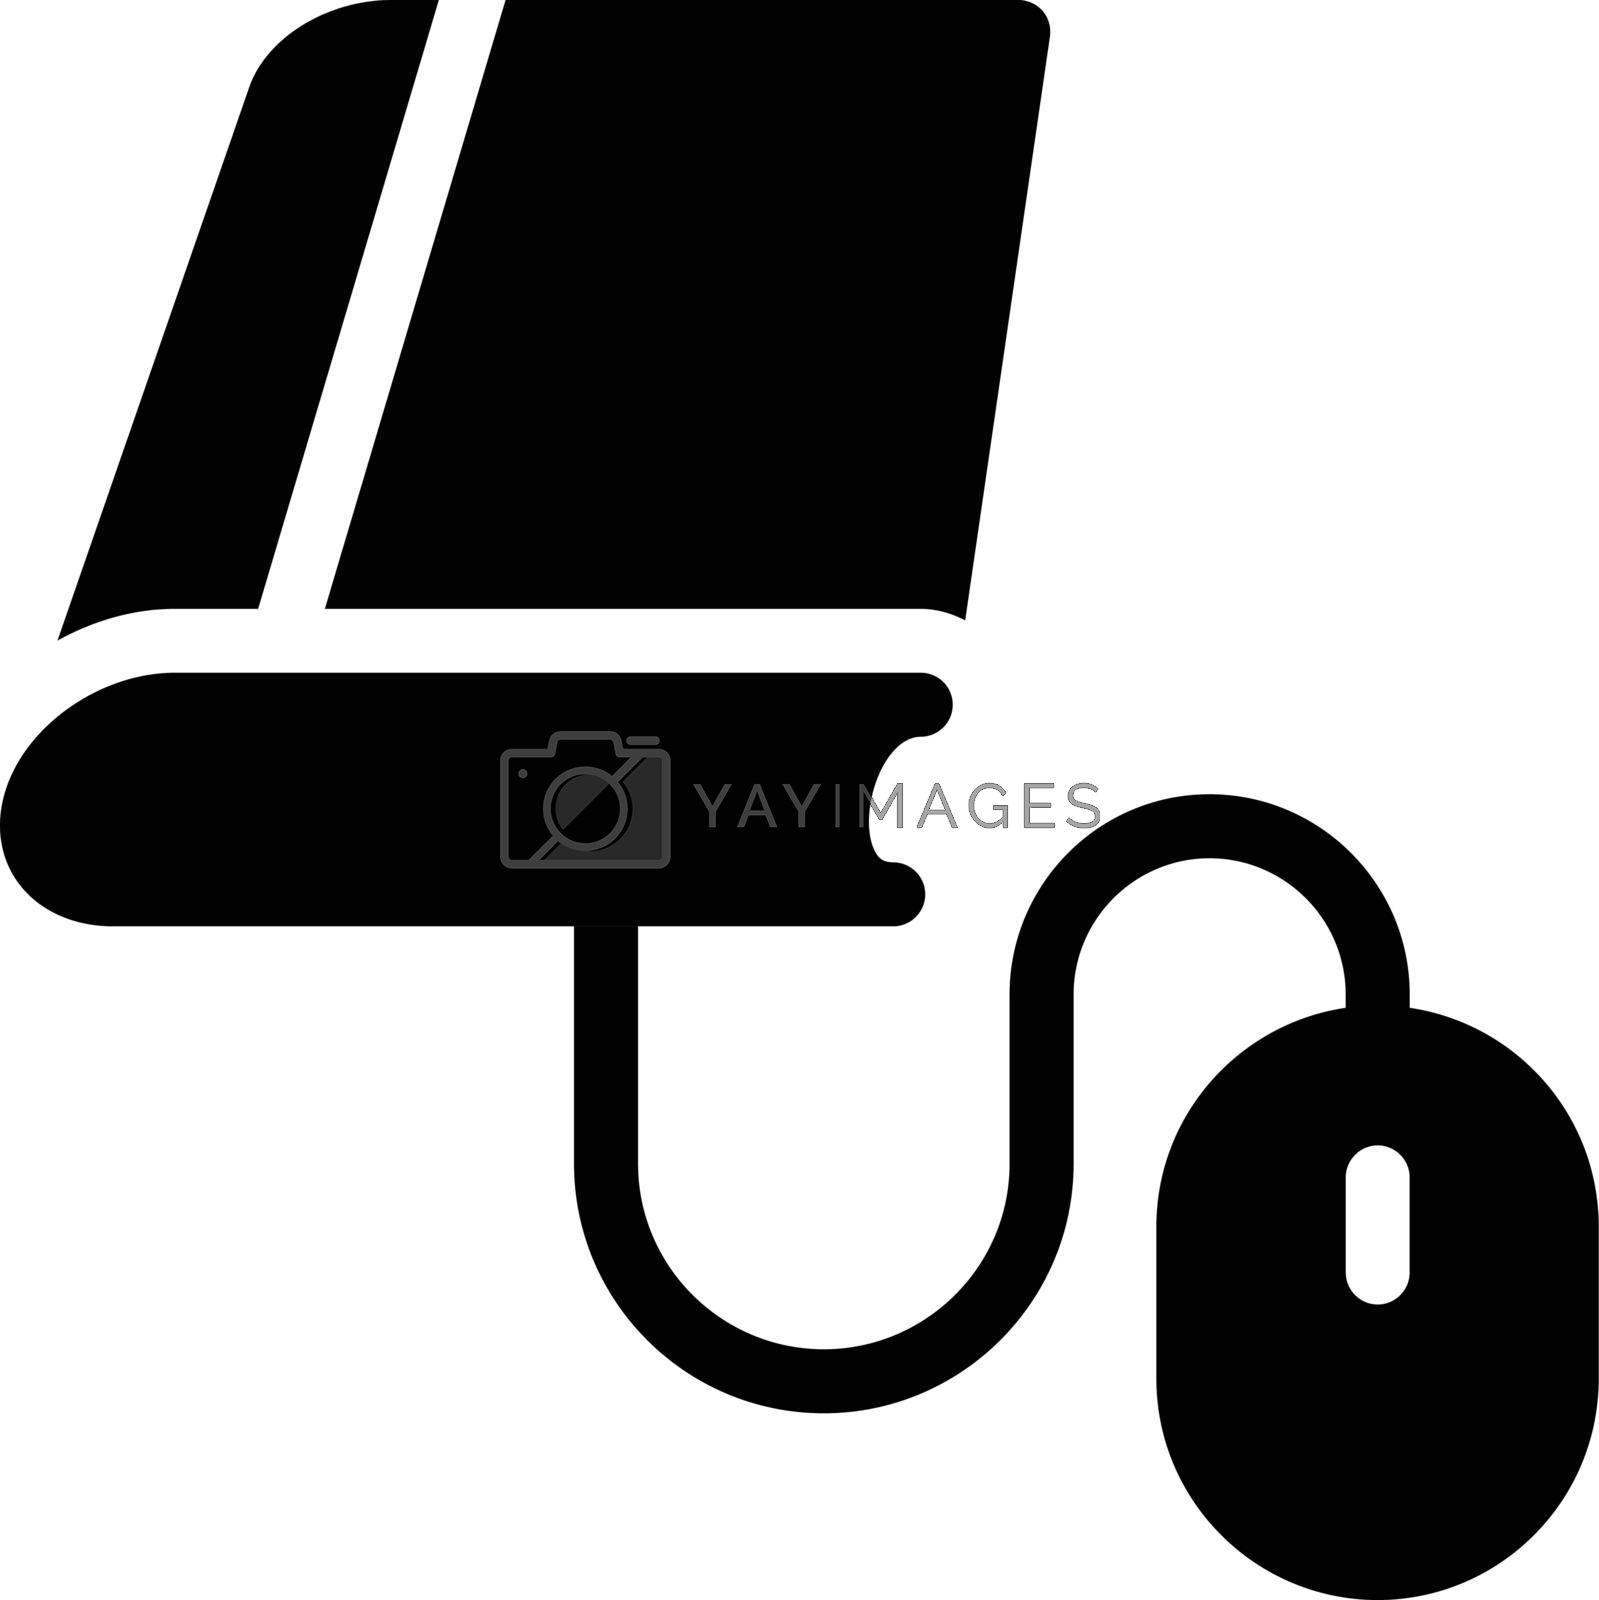 online education vector glyph flat icon